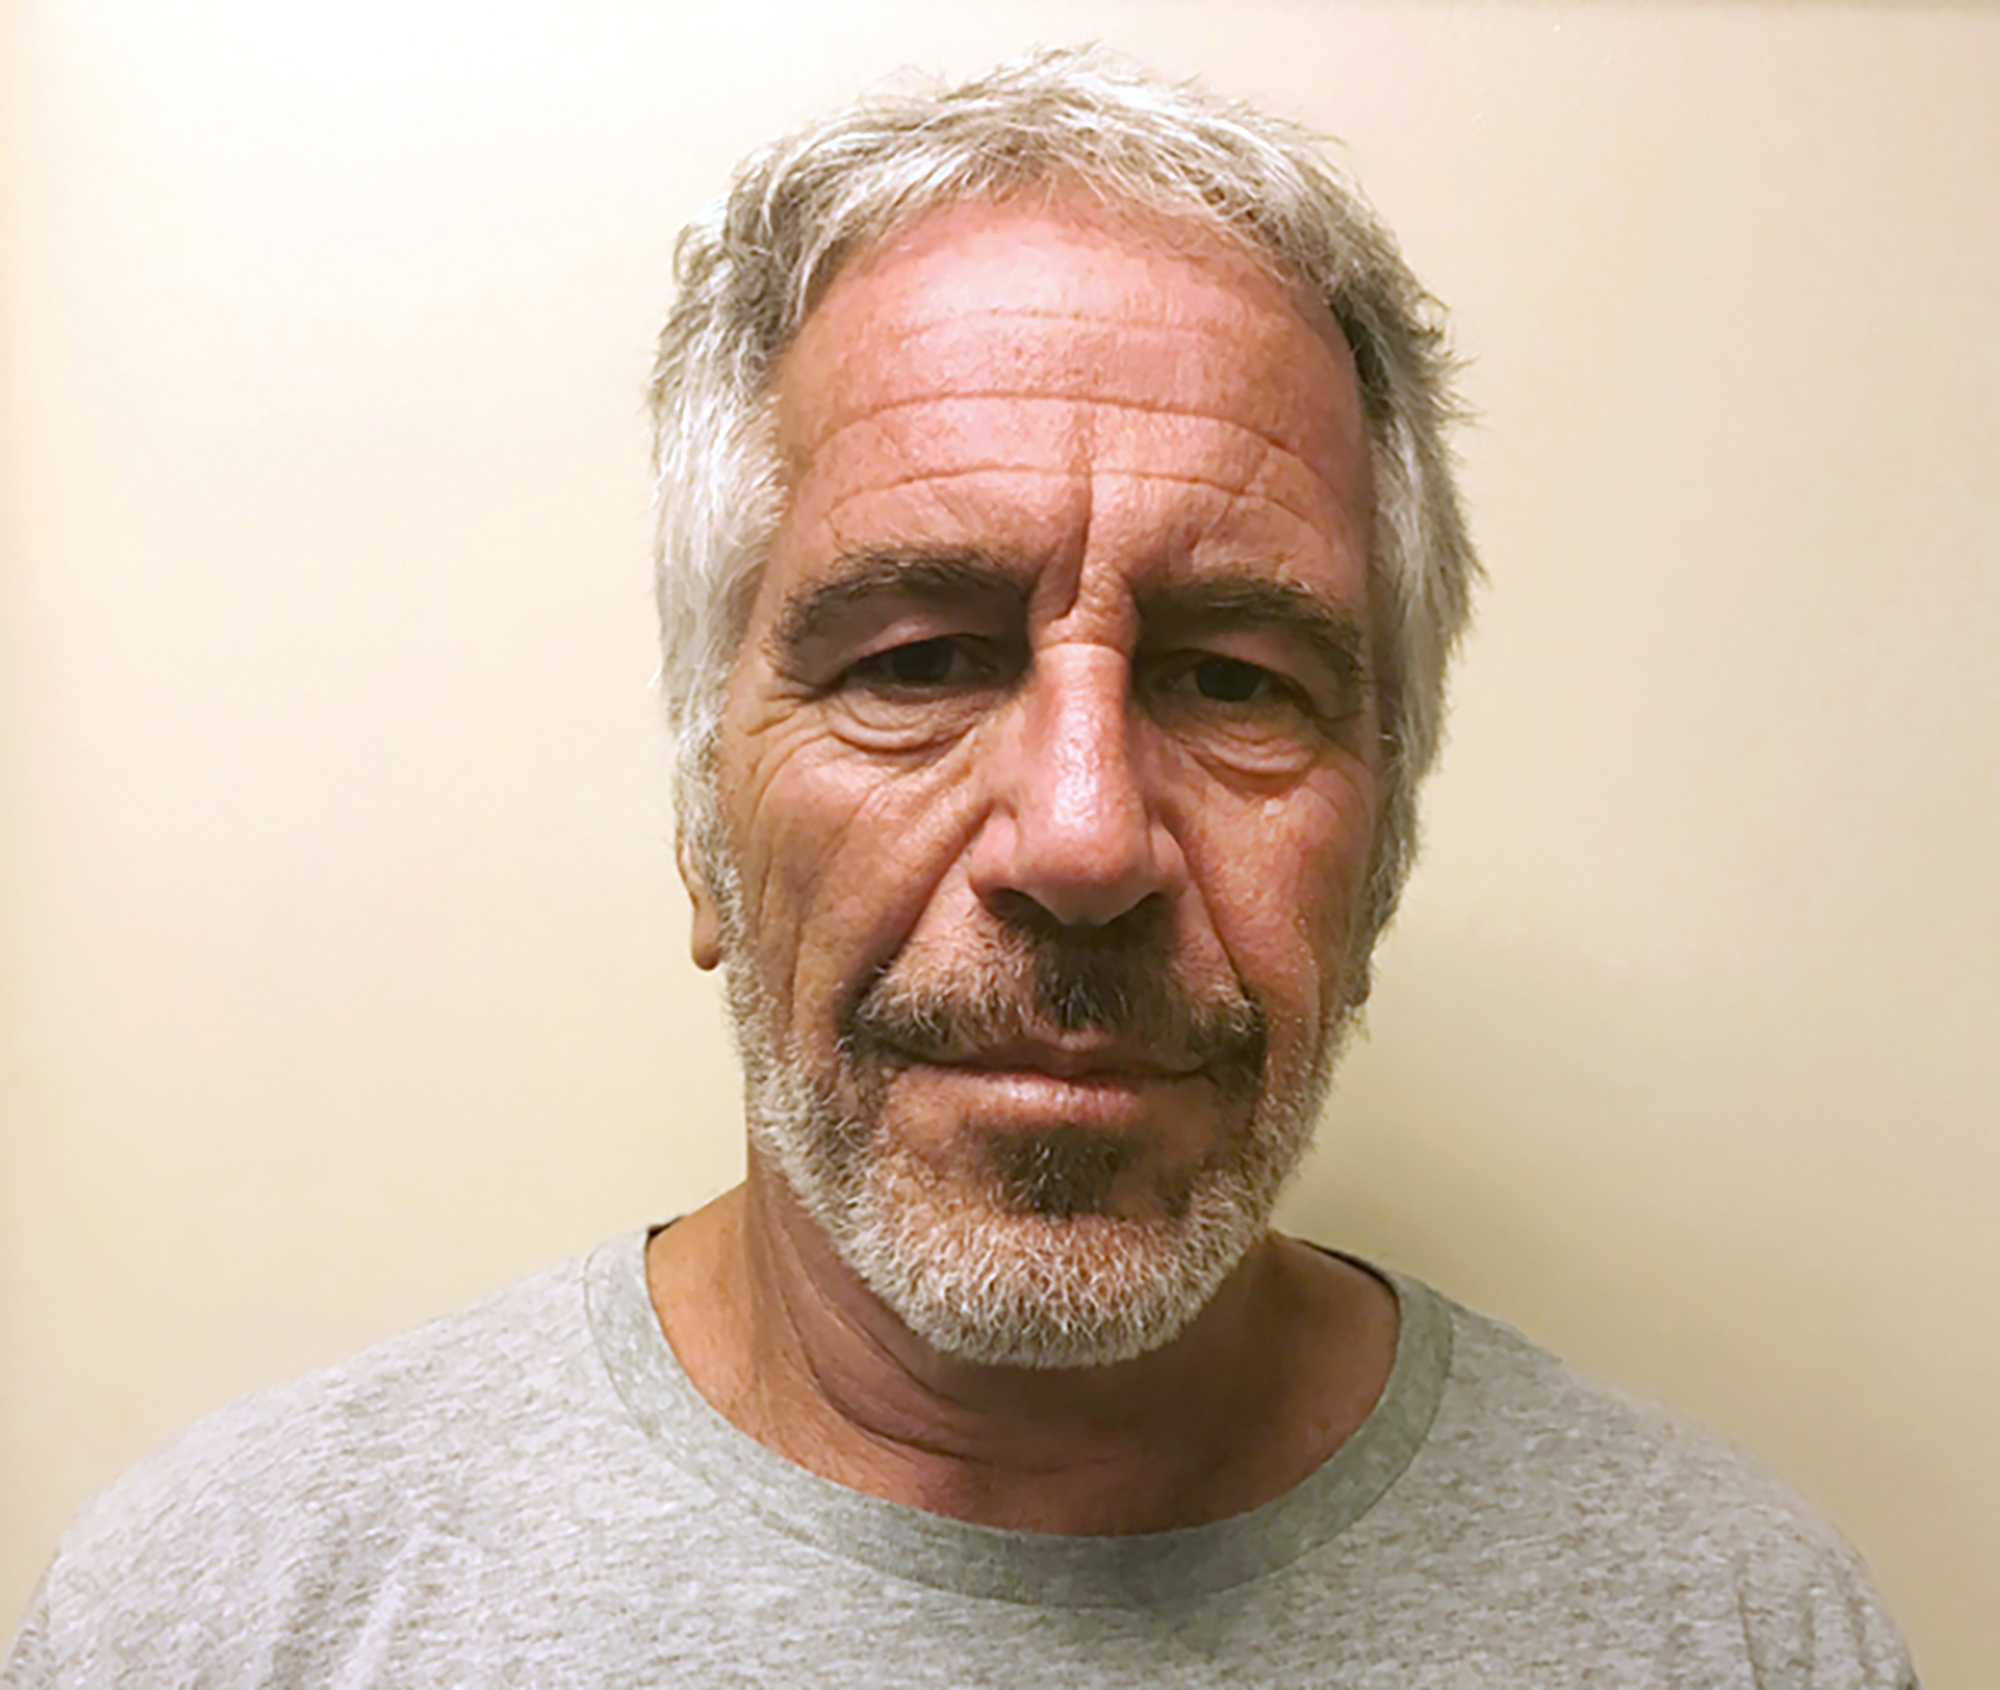 Prison psychologist removed Epstein from suicide watch after deeming he wasn't threat to self